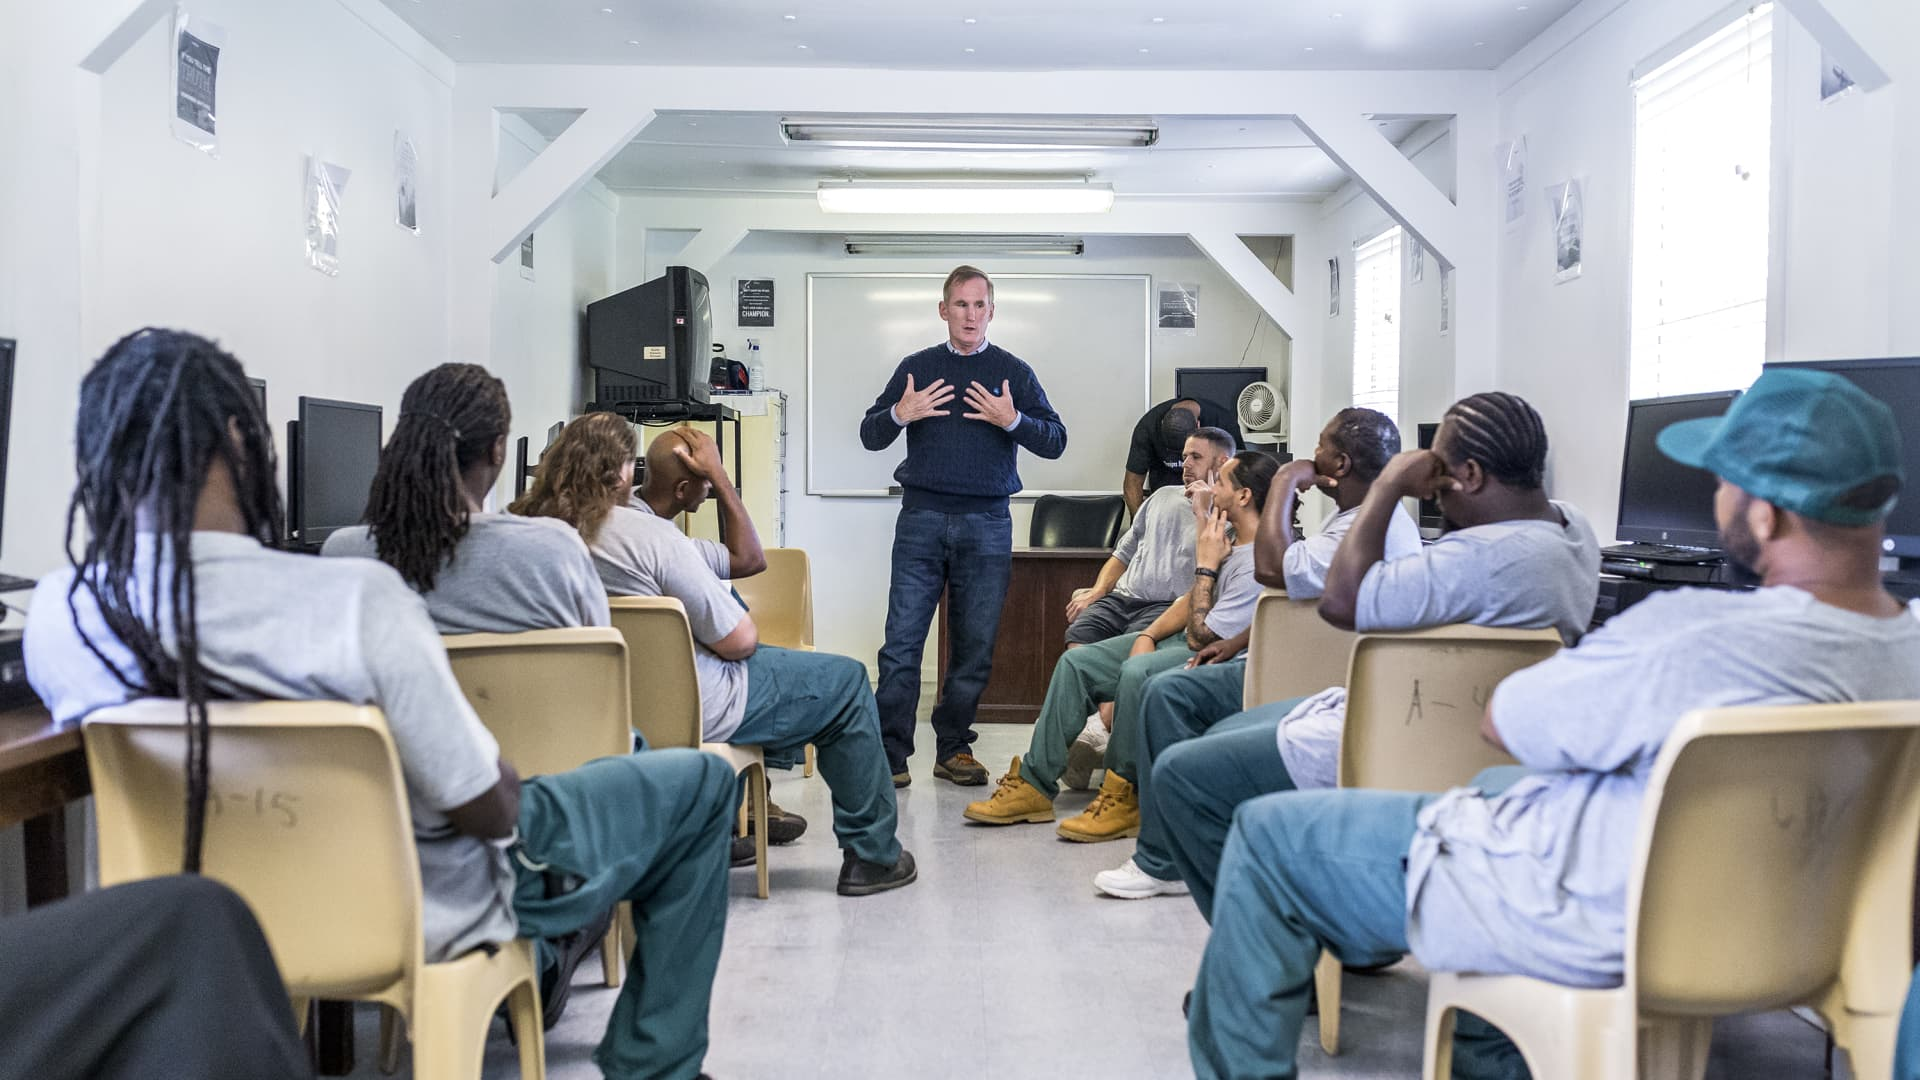 Brian Hamilton, director of Inmates to Entrepreneurs, teaches a one-day course at Gaston Correctional Center in Dallas, N.C. in 2018.